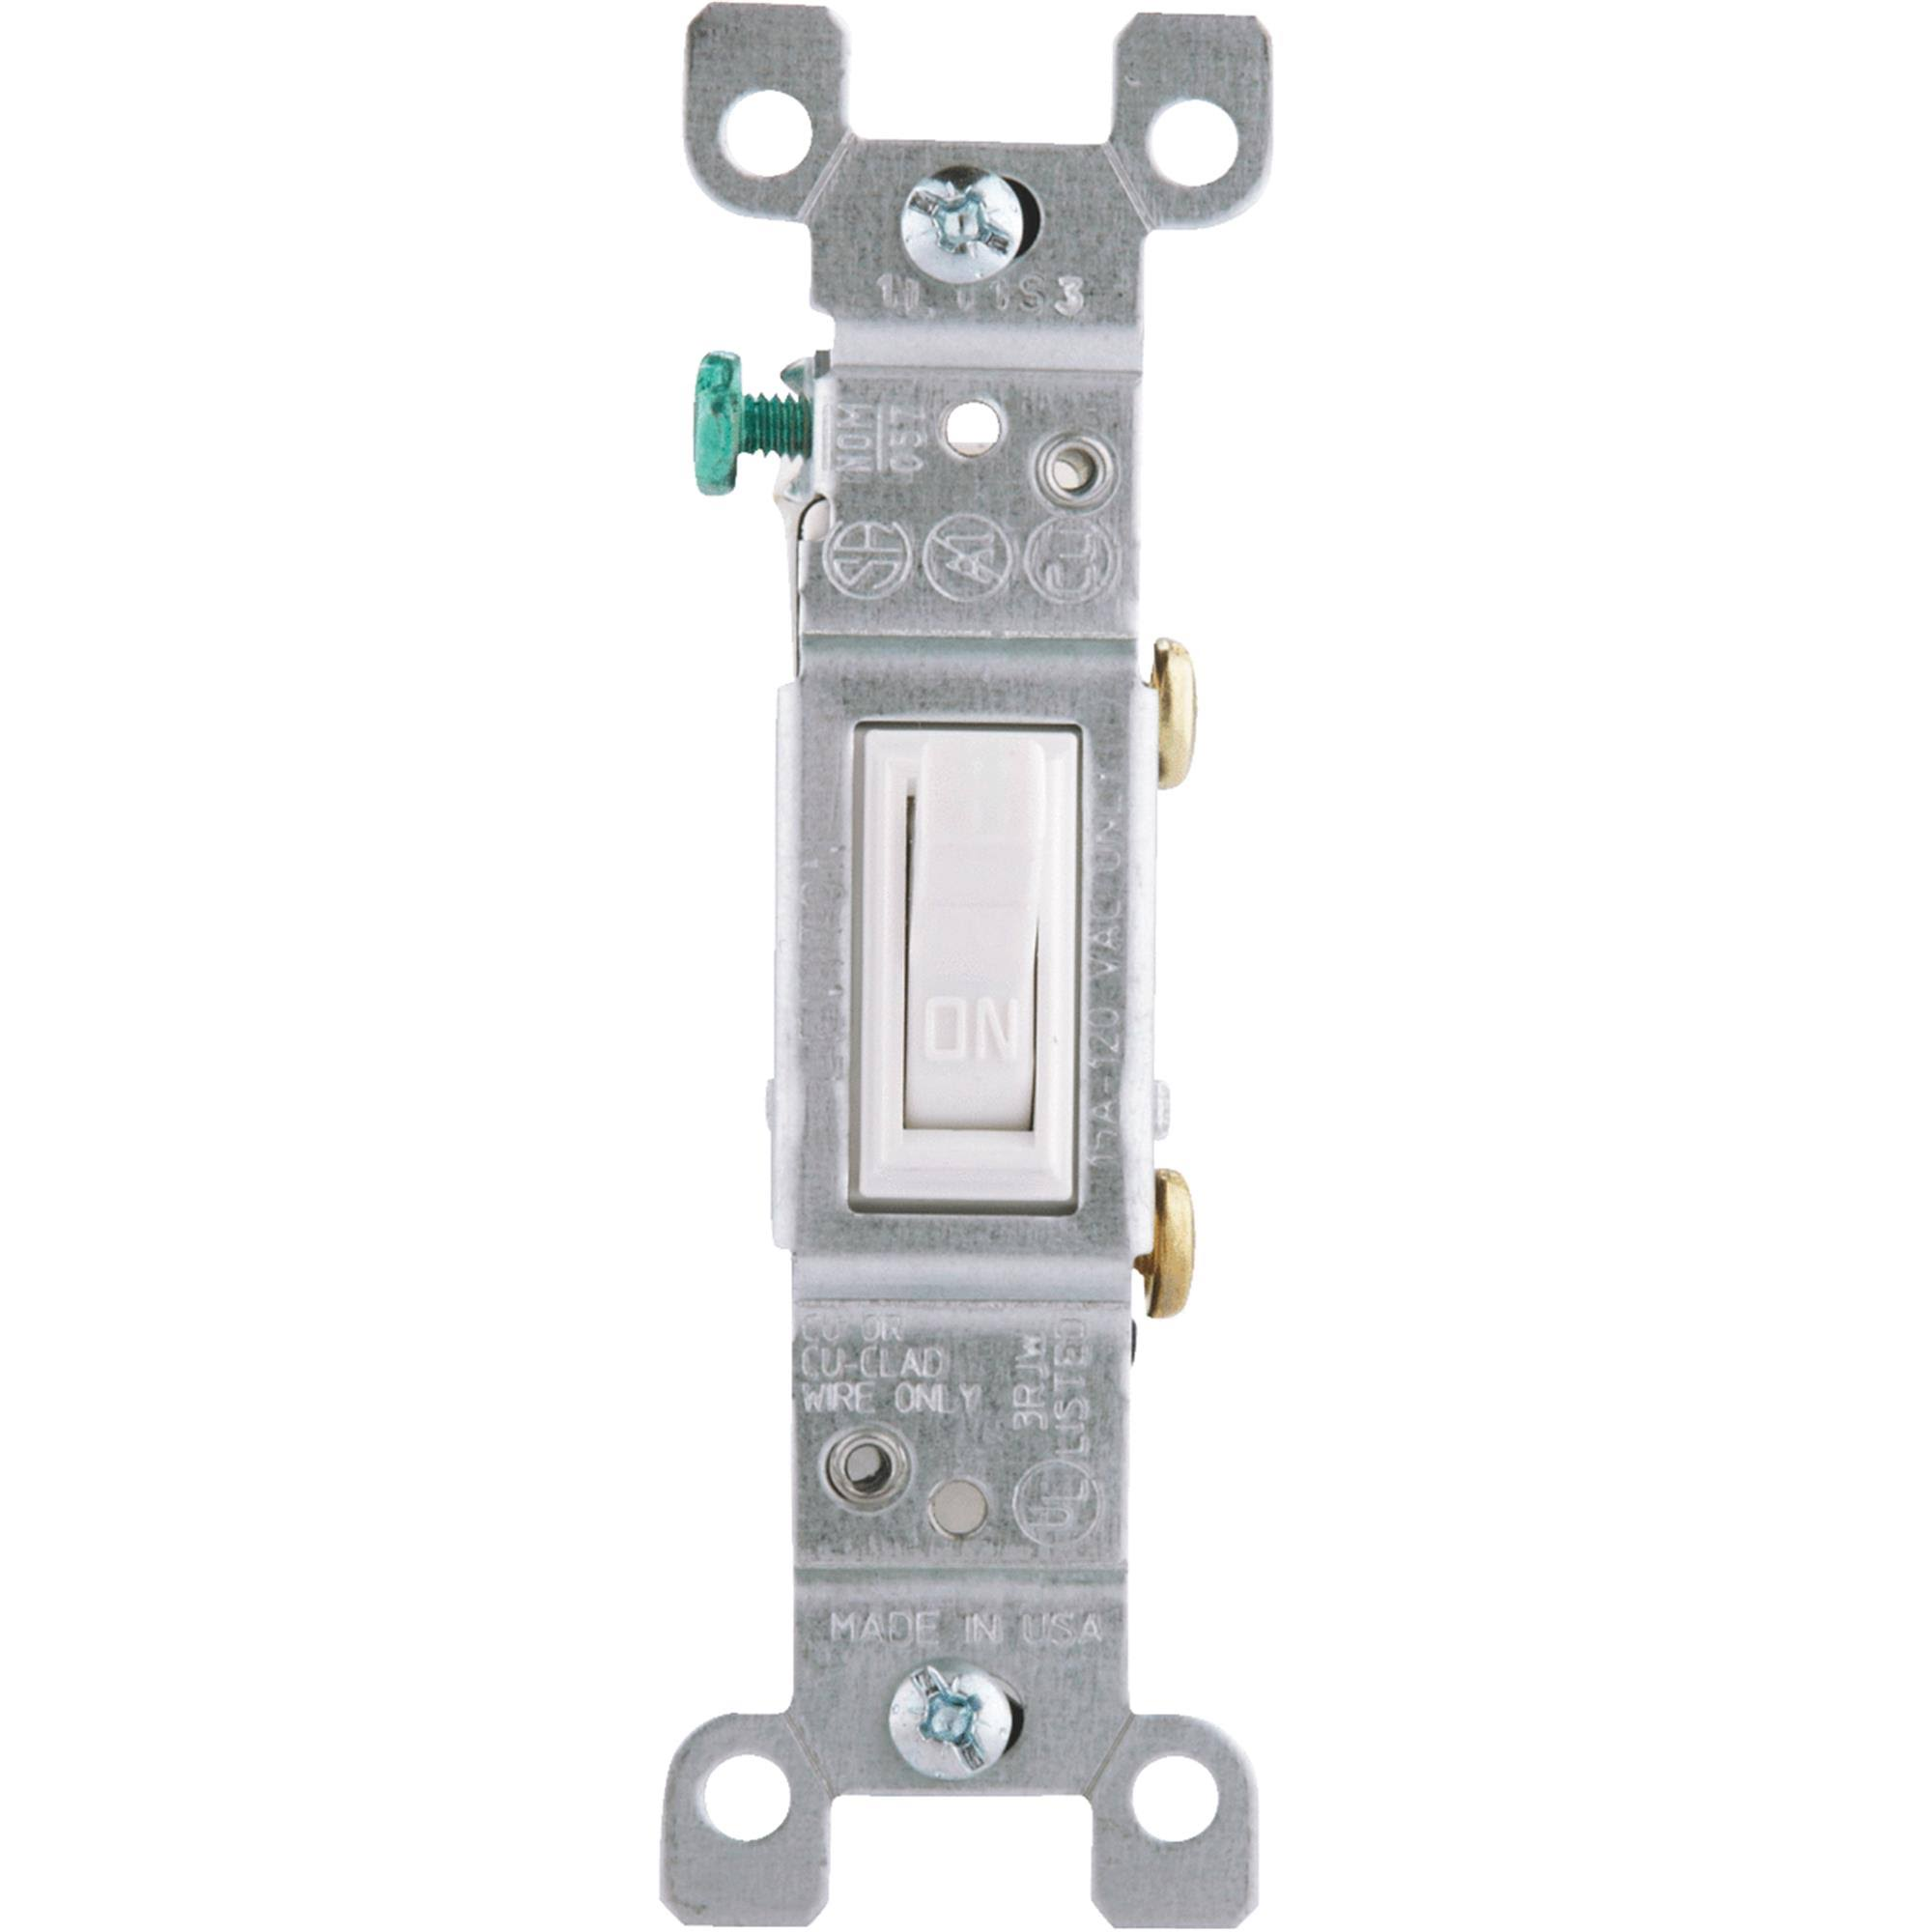 Leviton Toggle Switch - White, 15A, Single-Pole